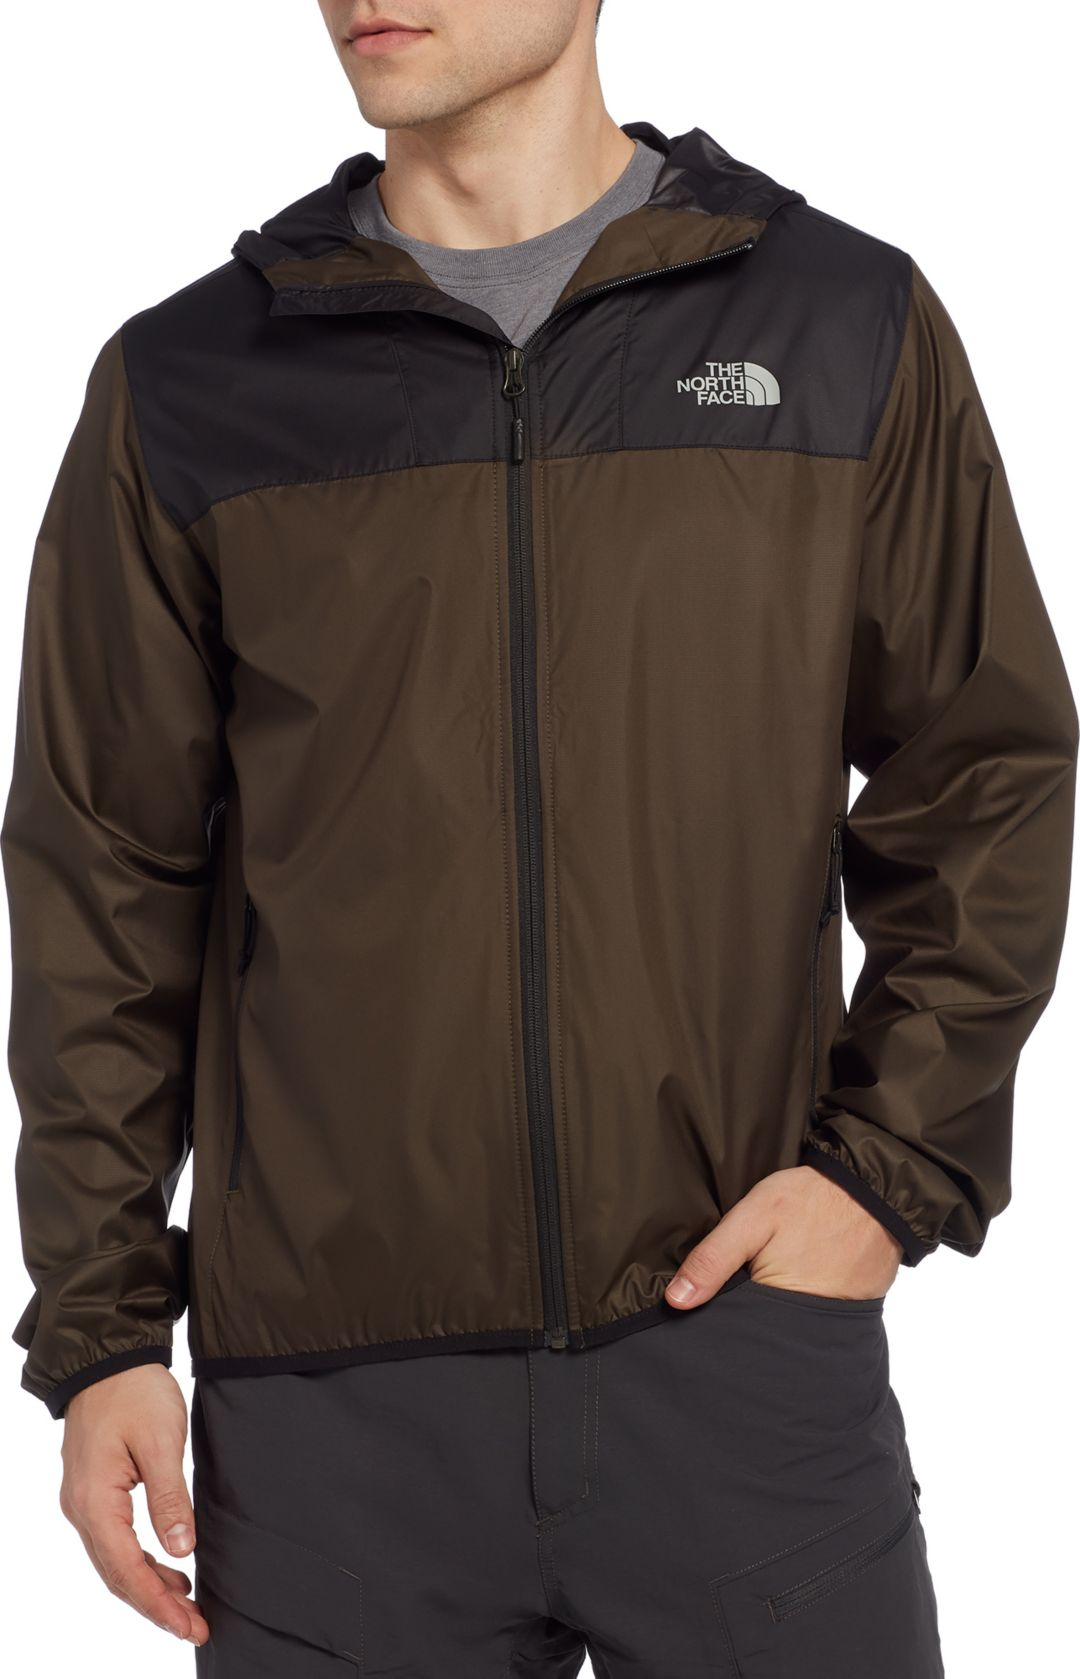 39cd565068b7d The North Face Men's Cyclone 2 Hooded Jacket | DICK'S Sporting Goods